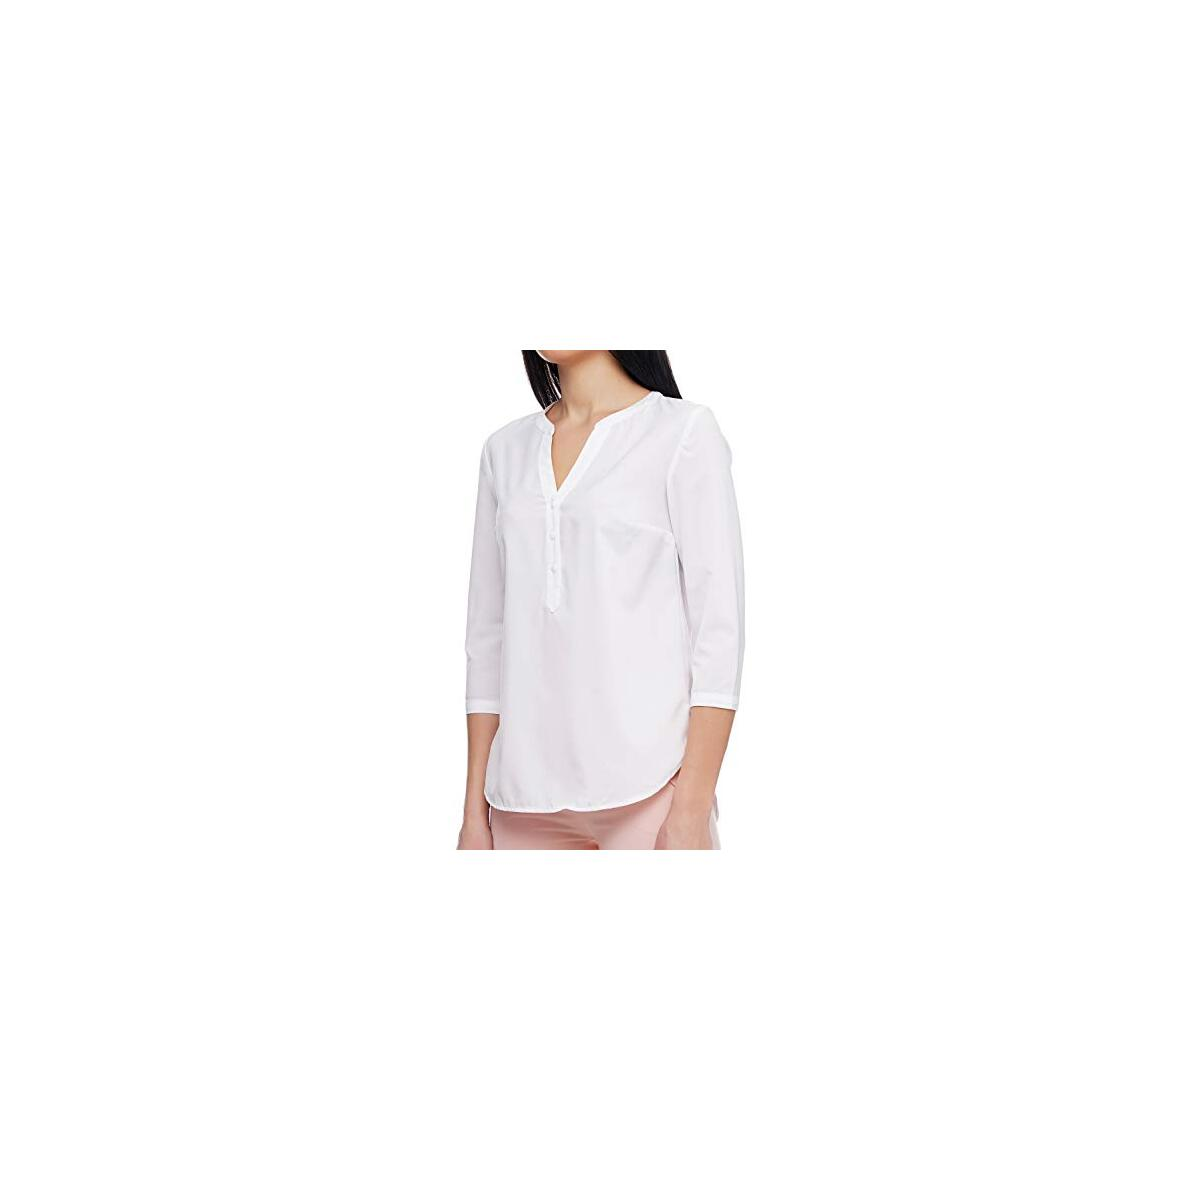 LadyLike Womens 3/4 Sleeve V Neck Casual Blouse Relaxed-Fit Shirt Tops for Work Office